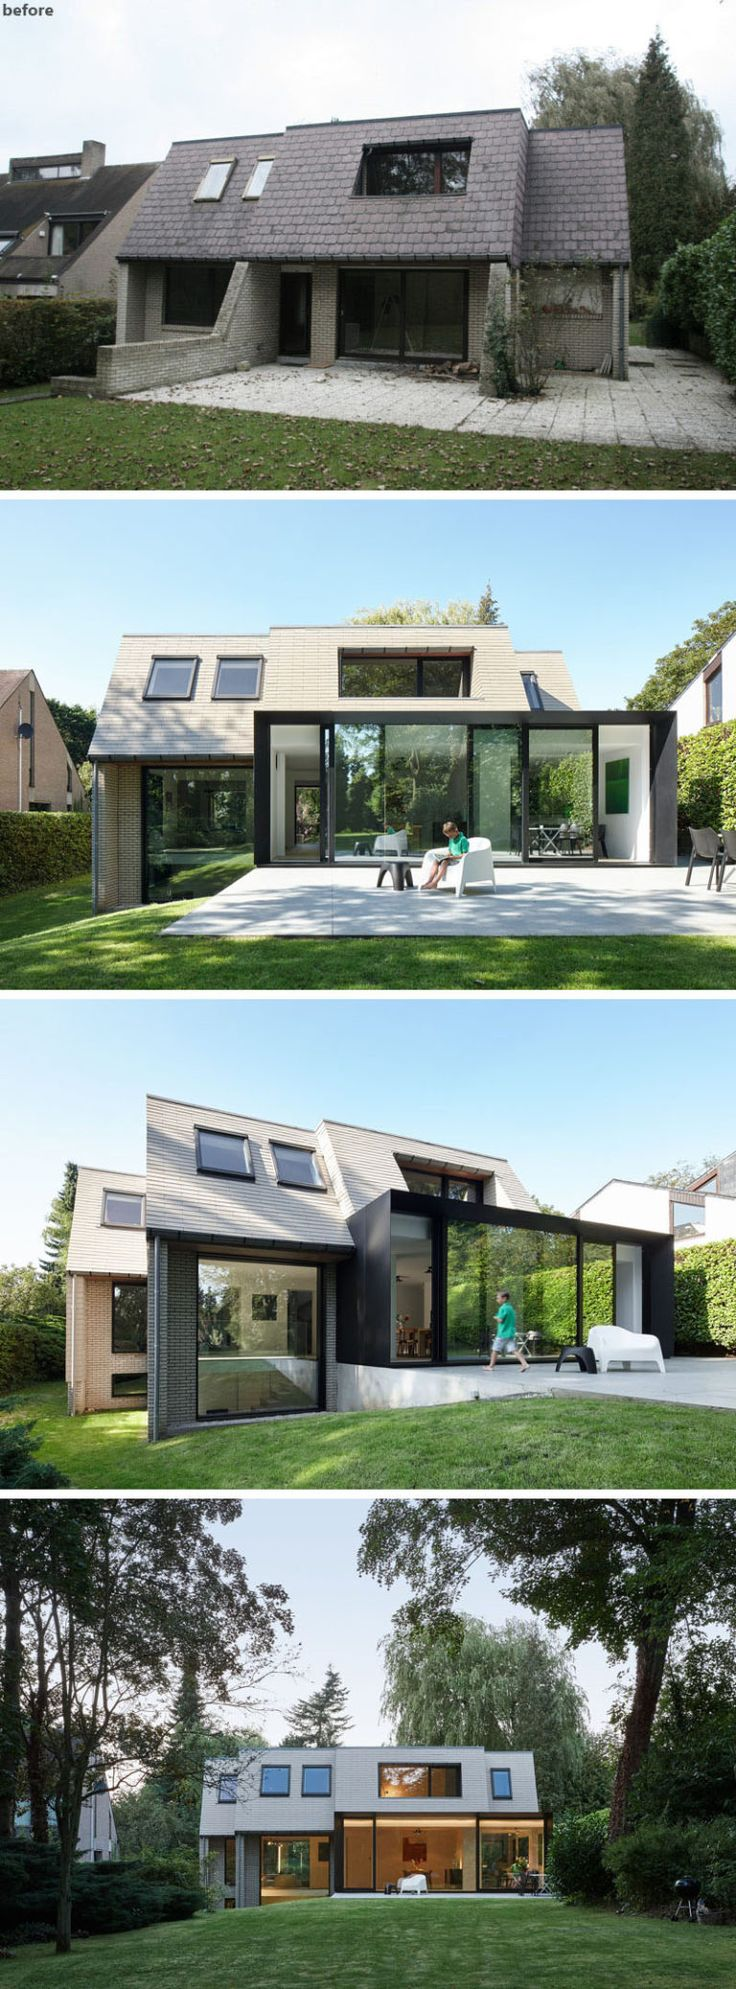 50 best Haus images on Pinterest | Decks, House porch and Old buildings